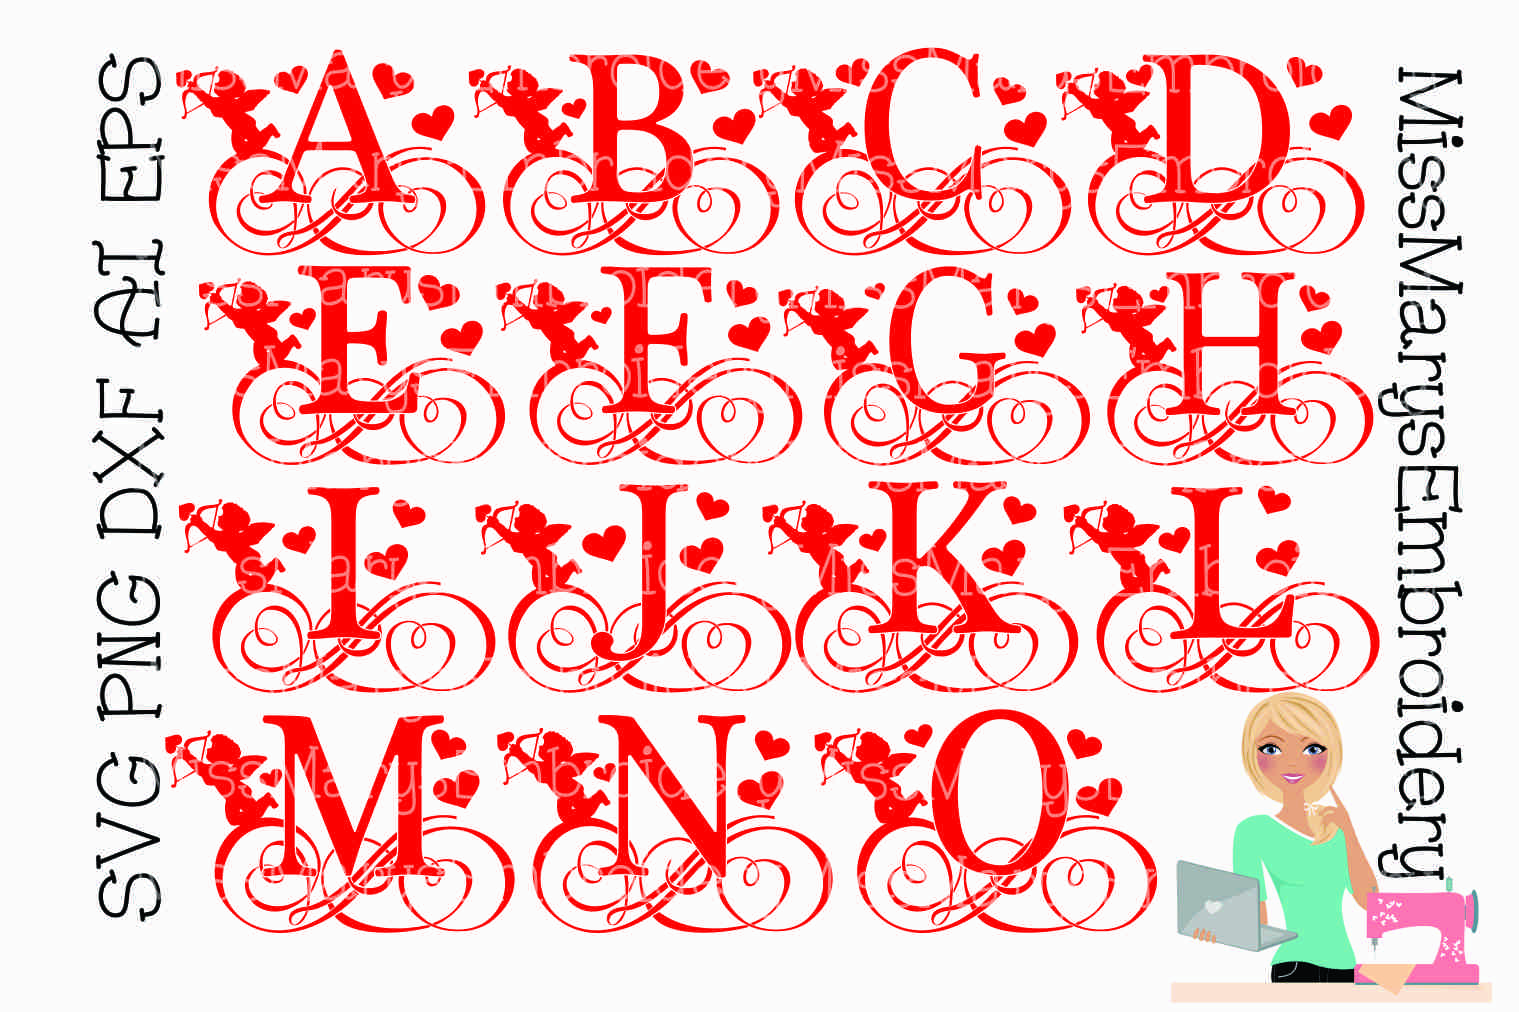 Cupid Swirl Letters SVG Cutting File PNG DXF AI EPS example image 2